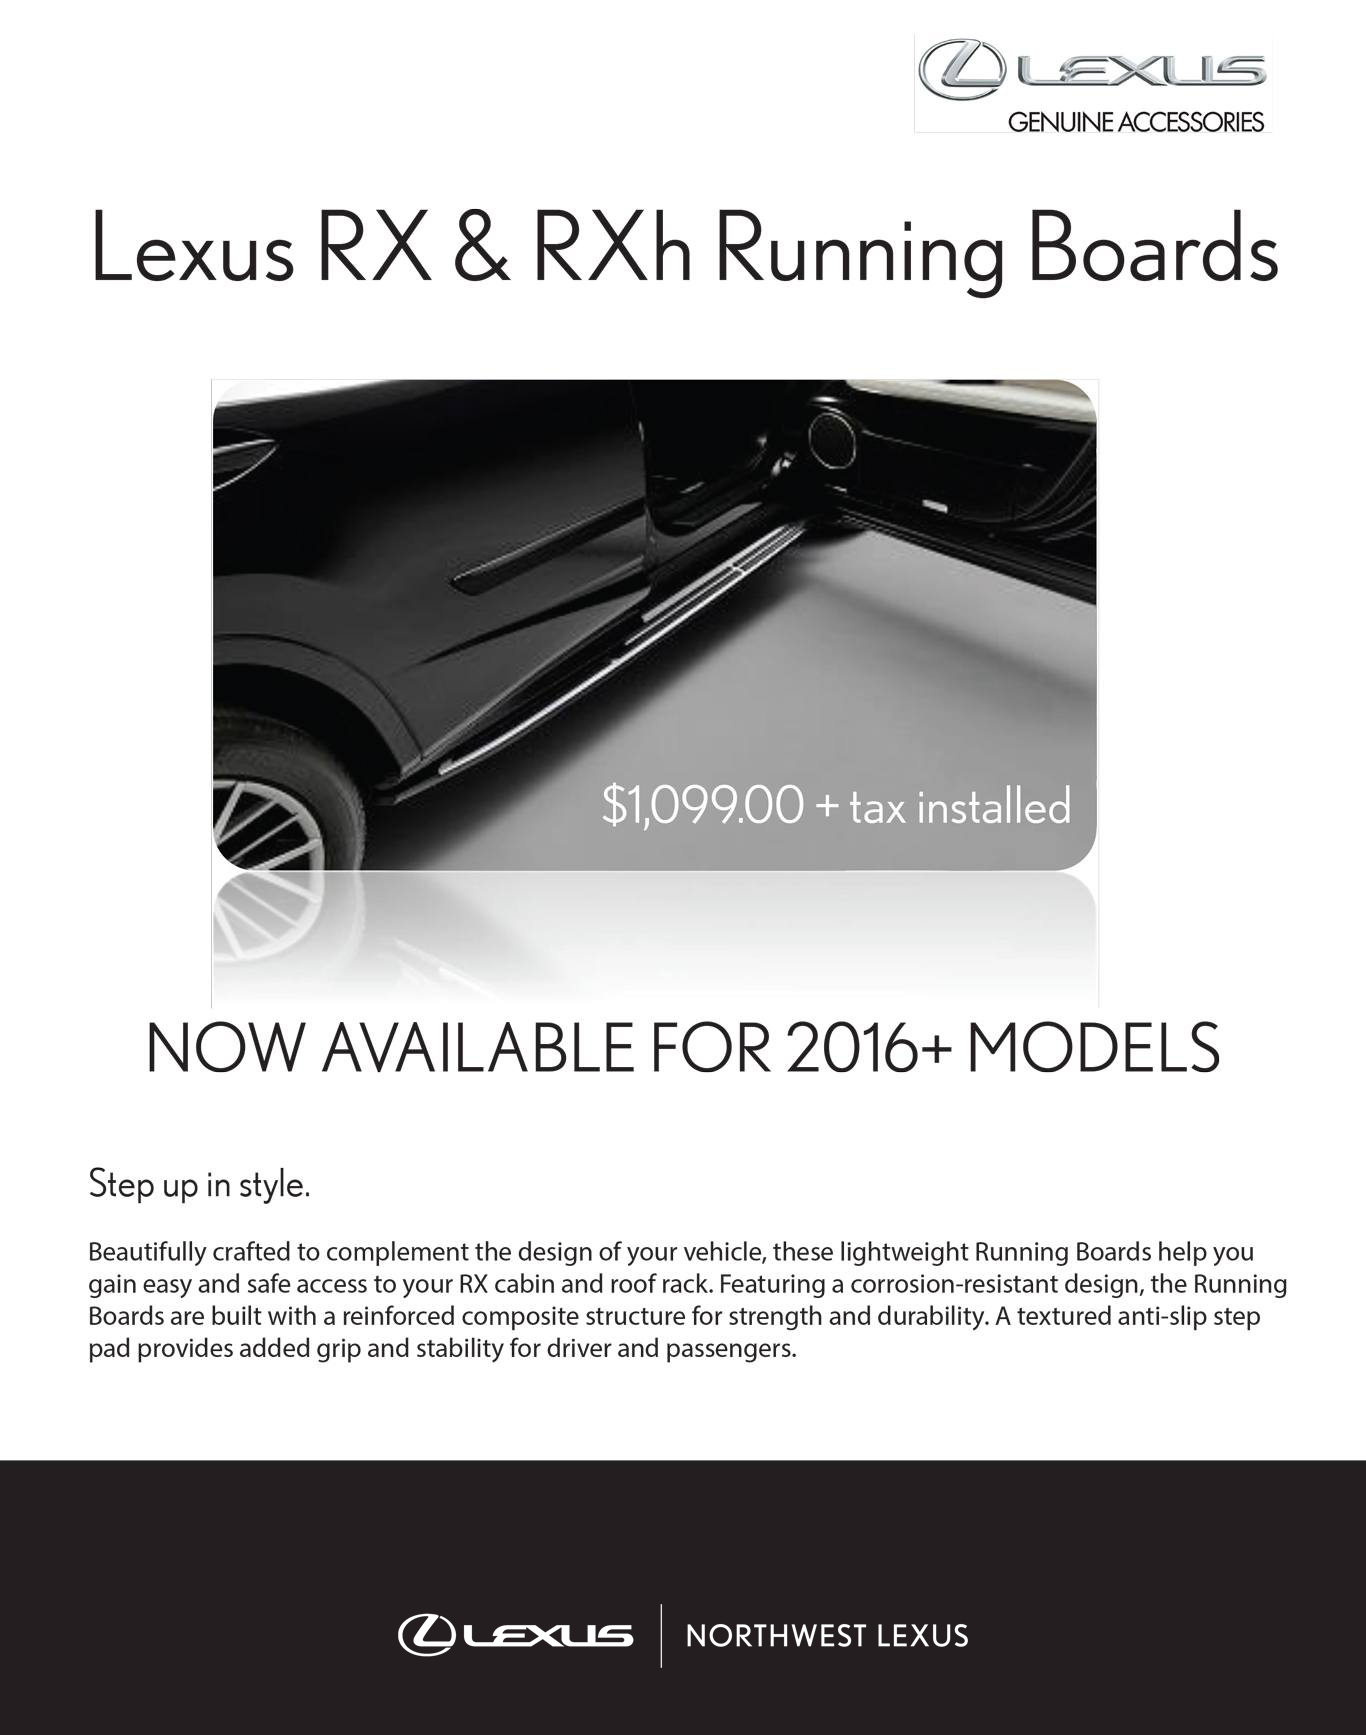 RX & RXh Running Boards